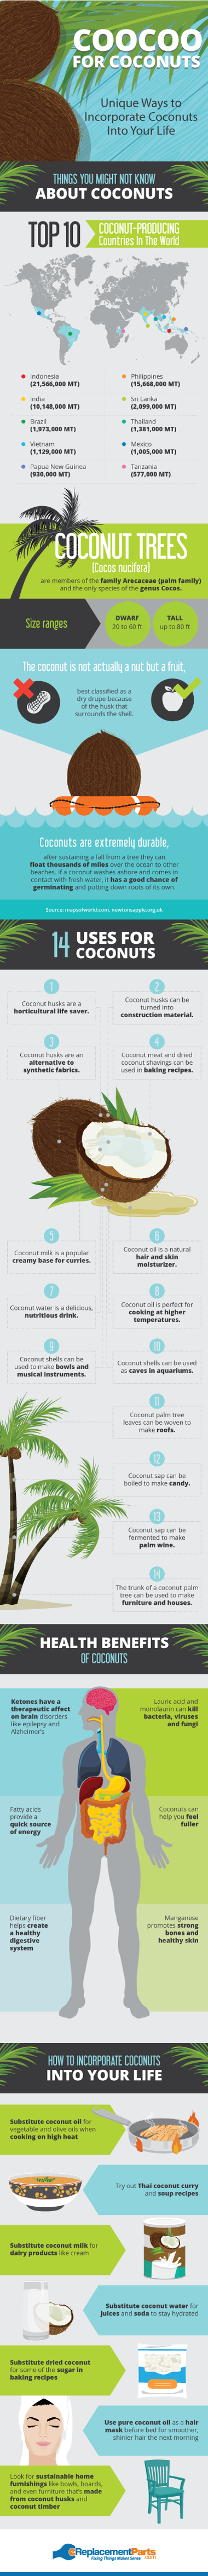 Unique Uses For Coconuts